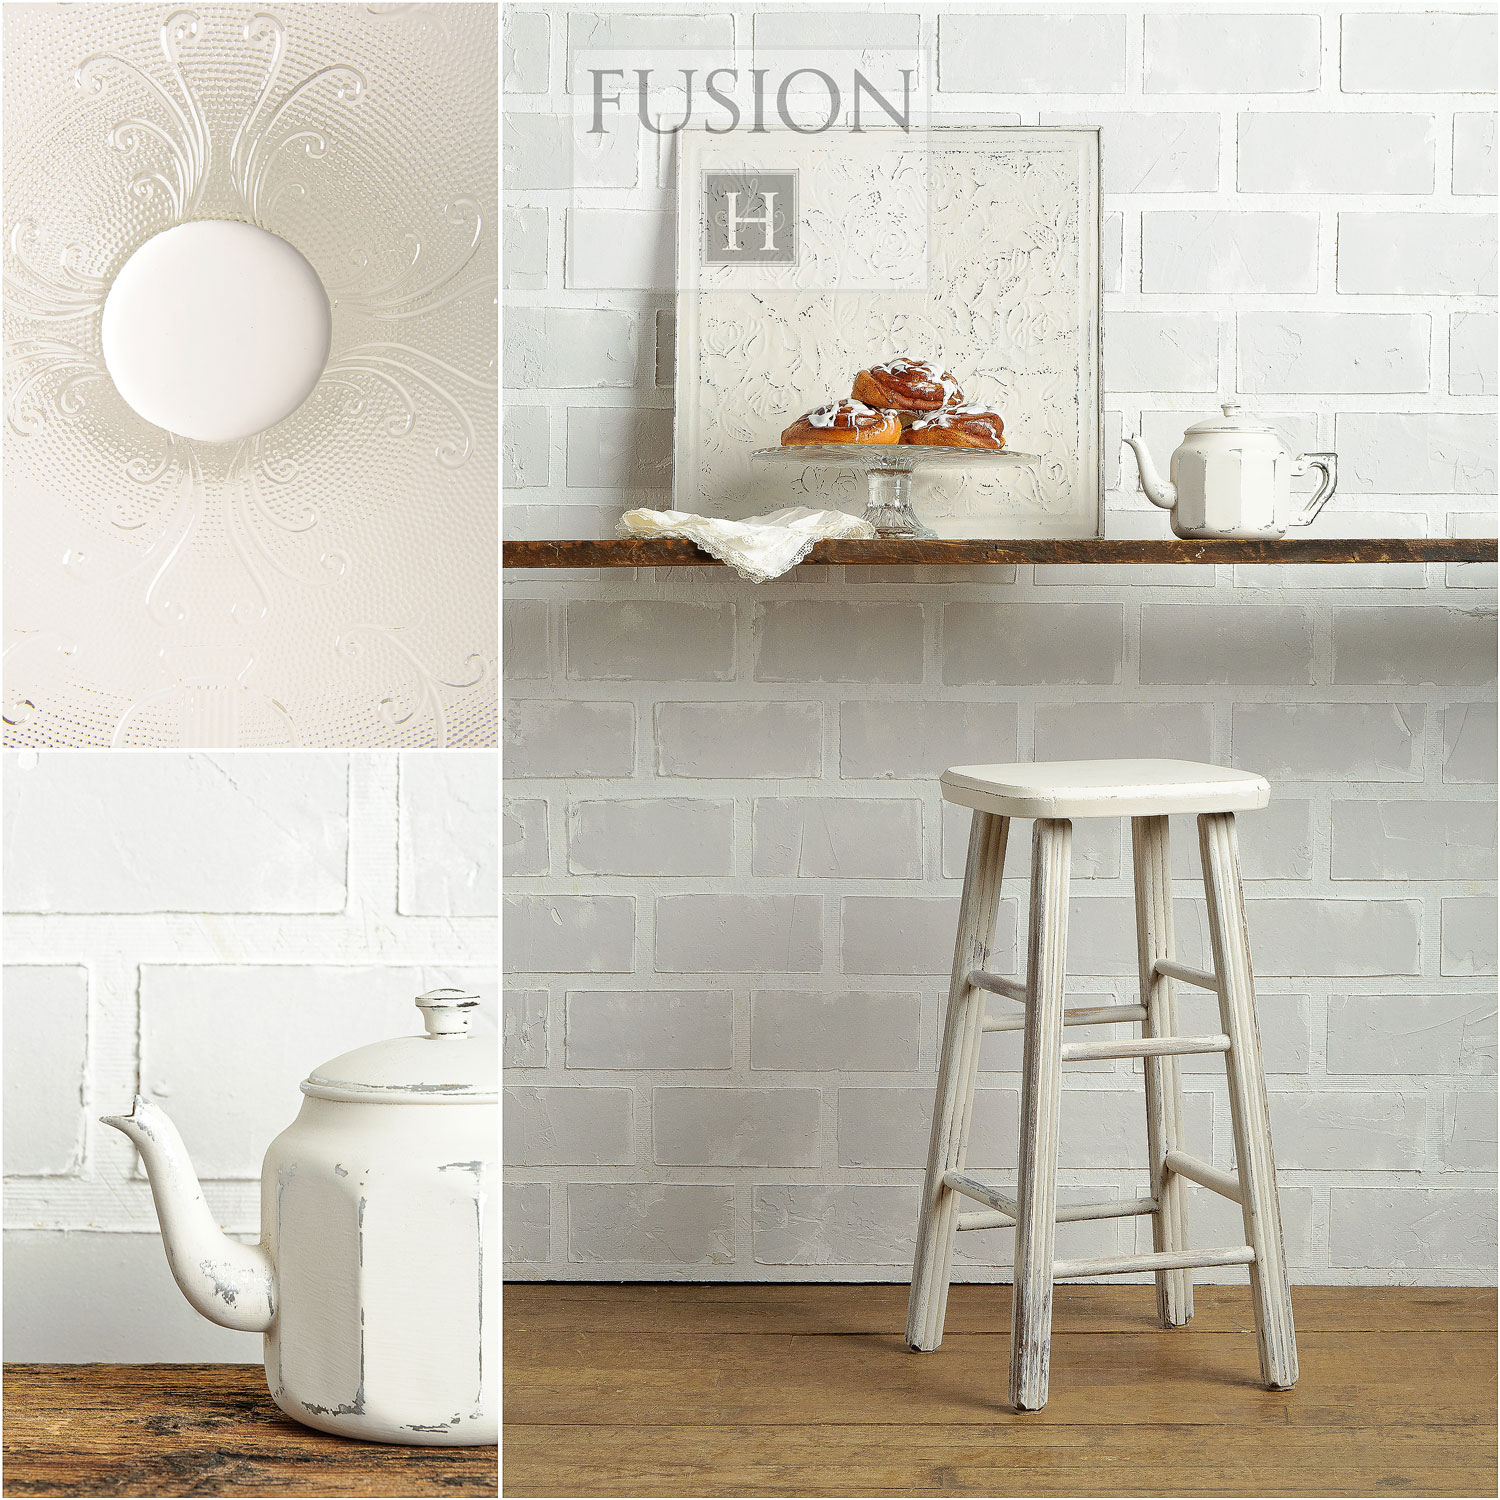 Fusion paint in champlain - via My Painted Door (.com)